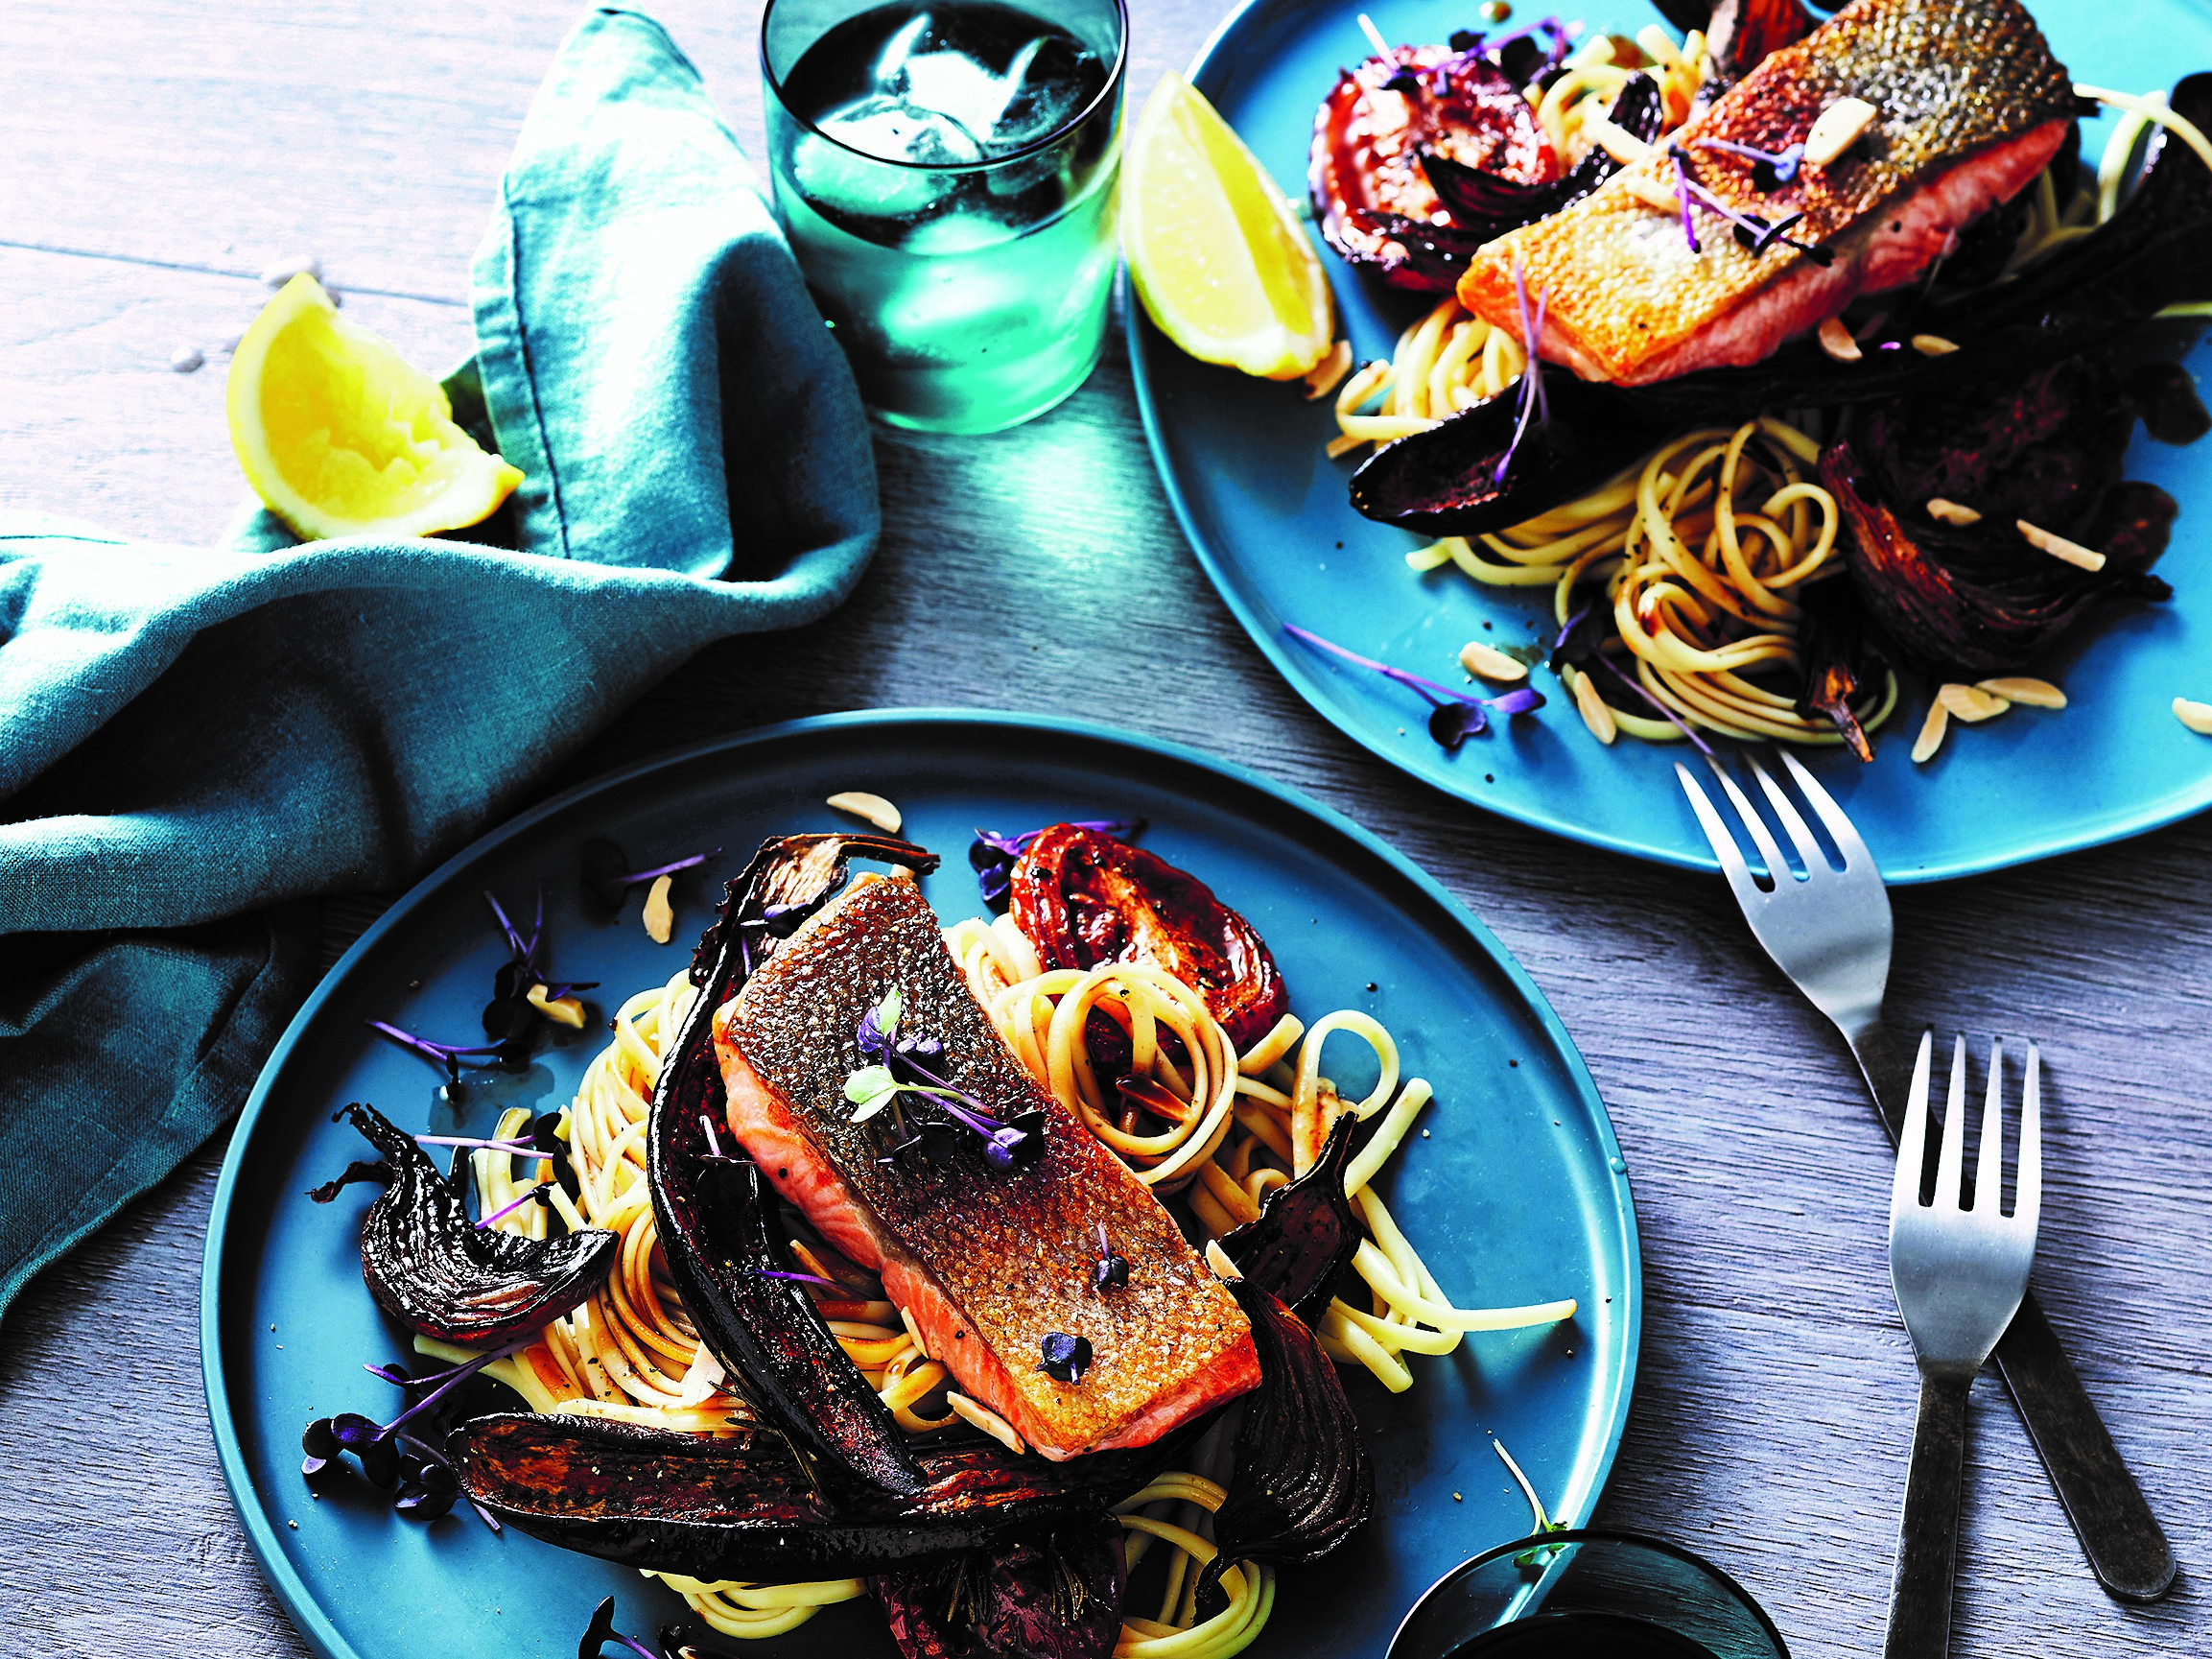 A plate of salmon from the CSIRO Women's Health and Nutrition Guide